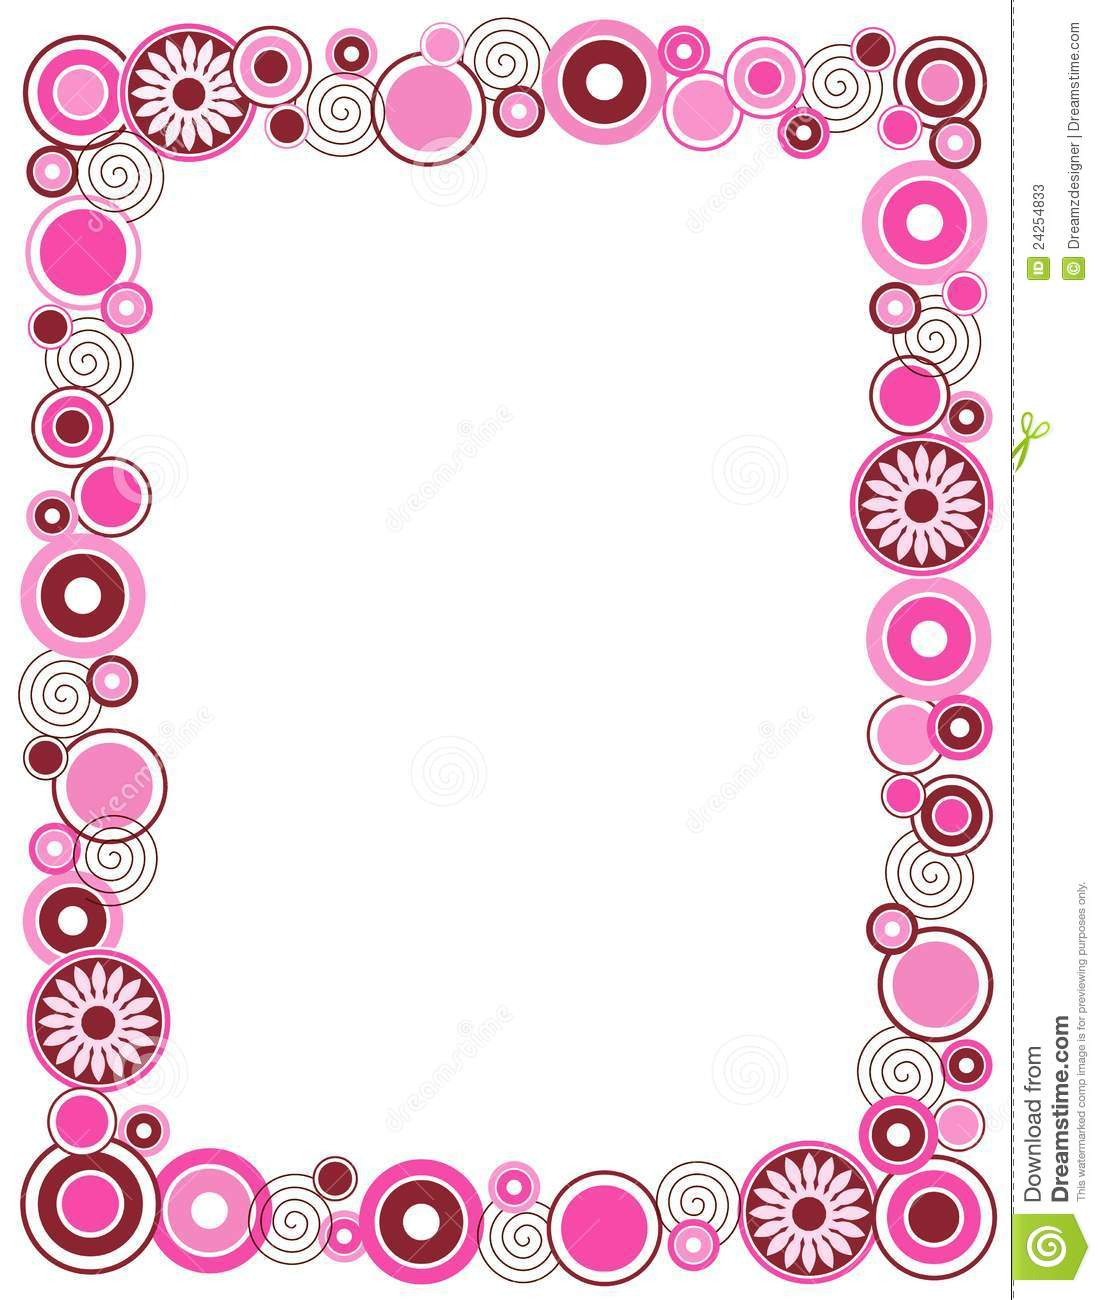 Beautiful pink retro circle / flowers frame / border.